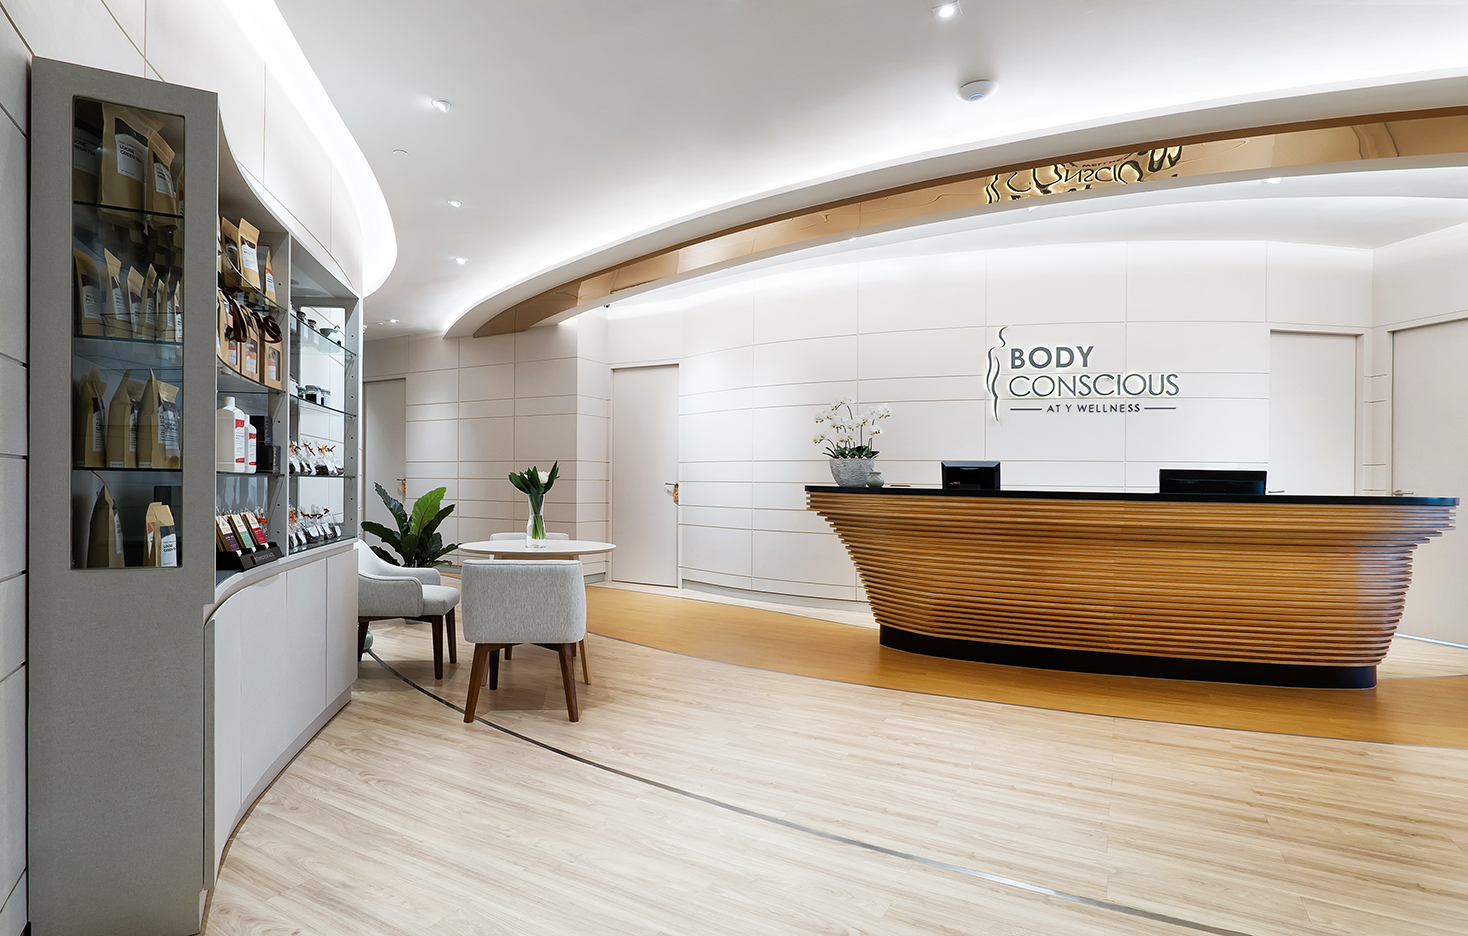 10design body conscious bangkok spa wellness interior design hospitality project modern architecture